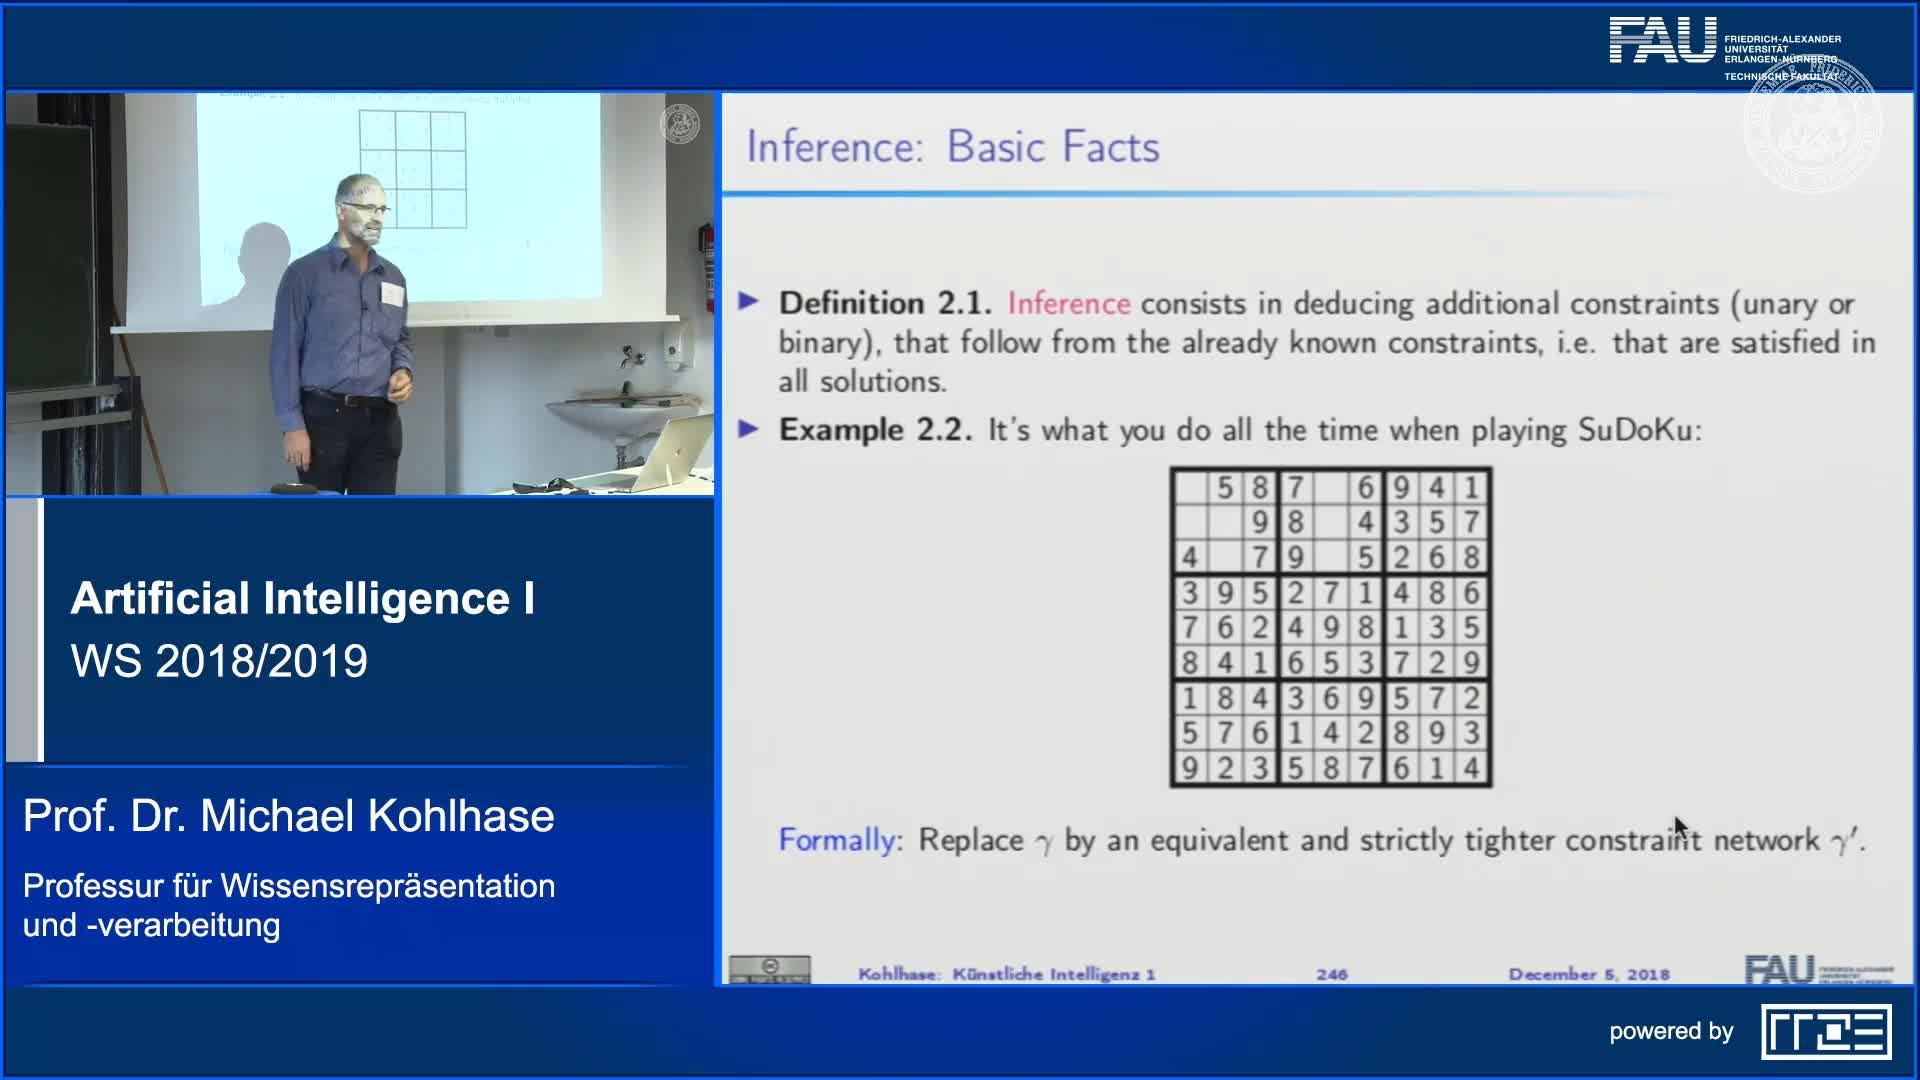 Inference preview image